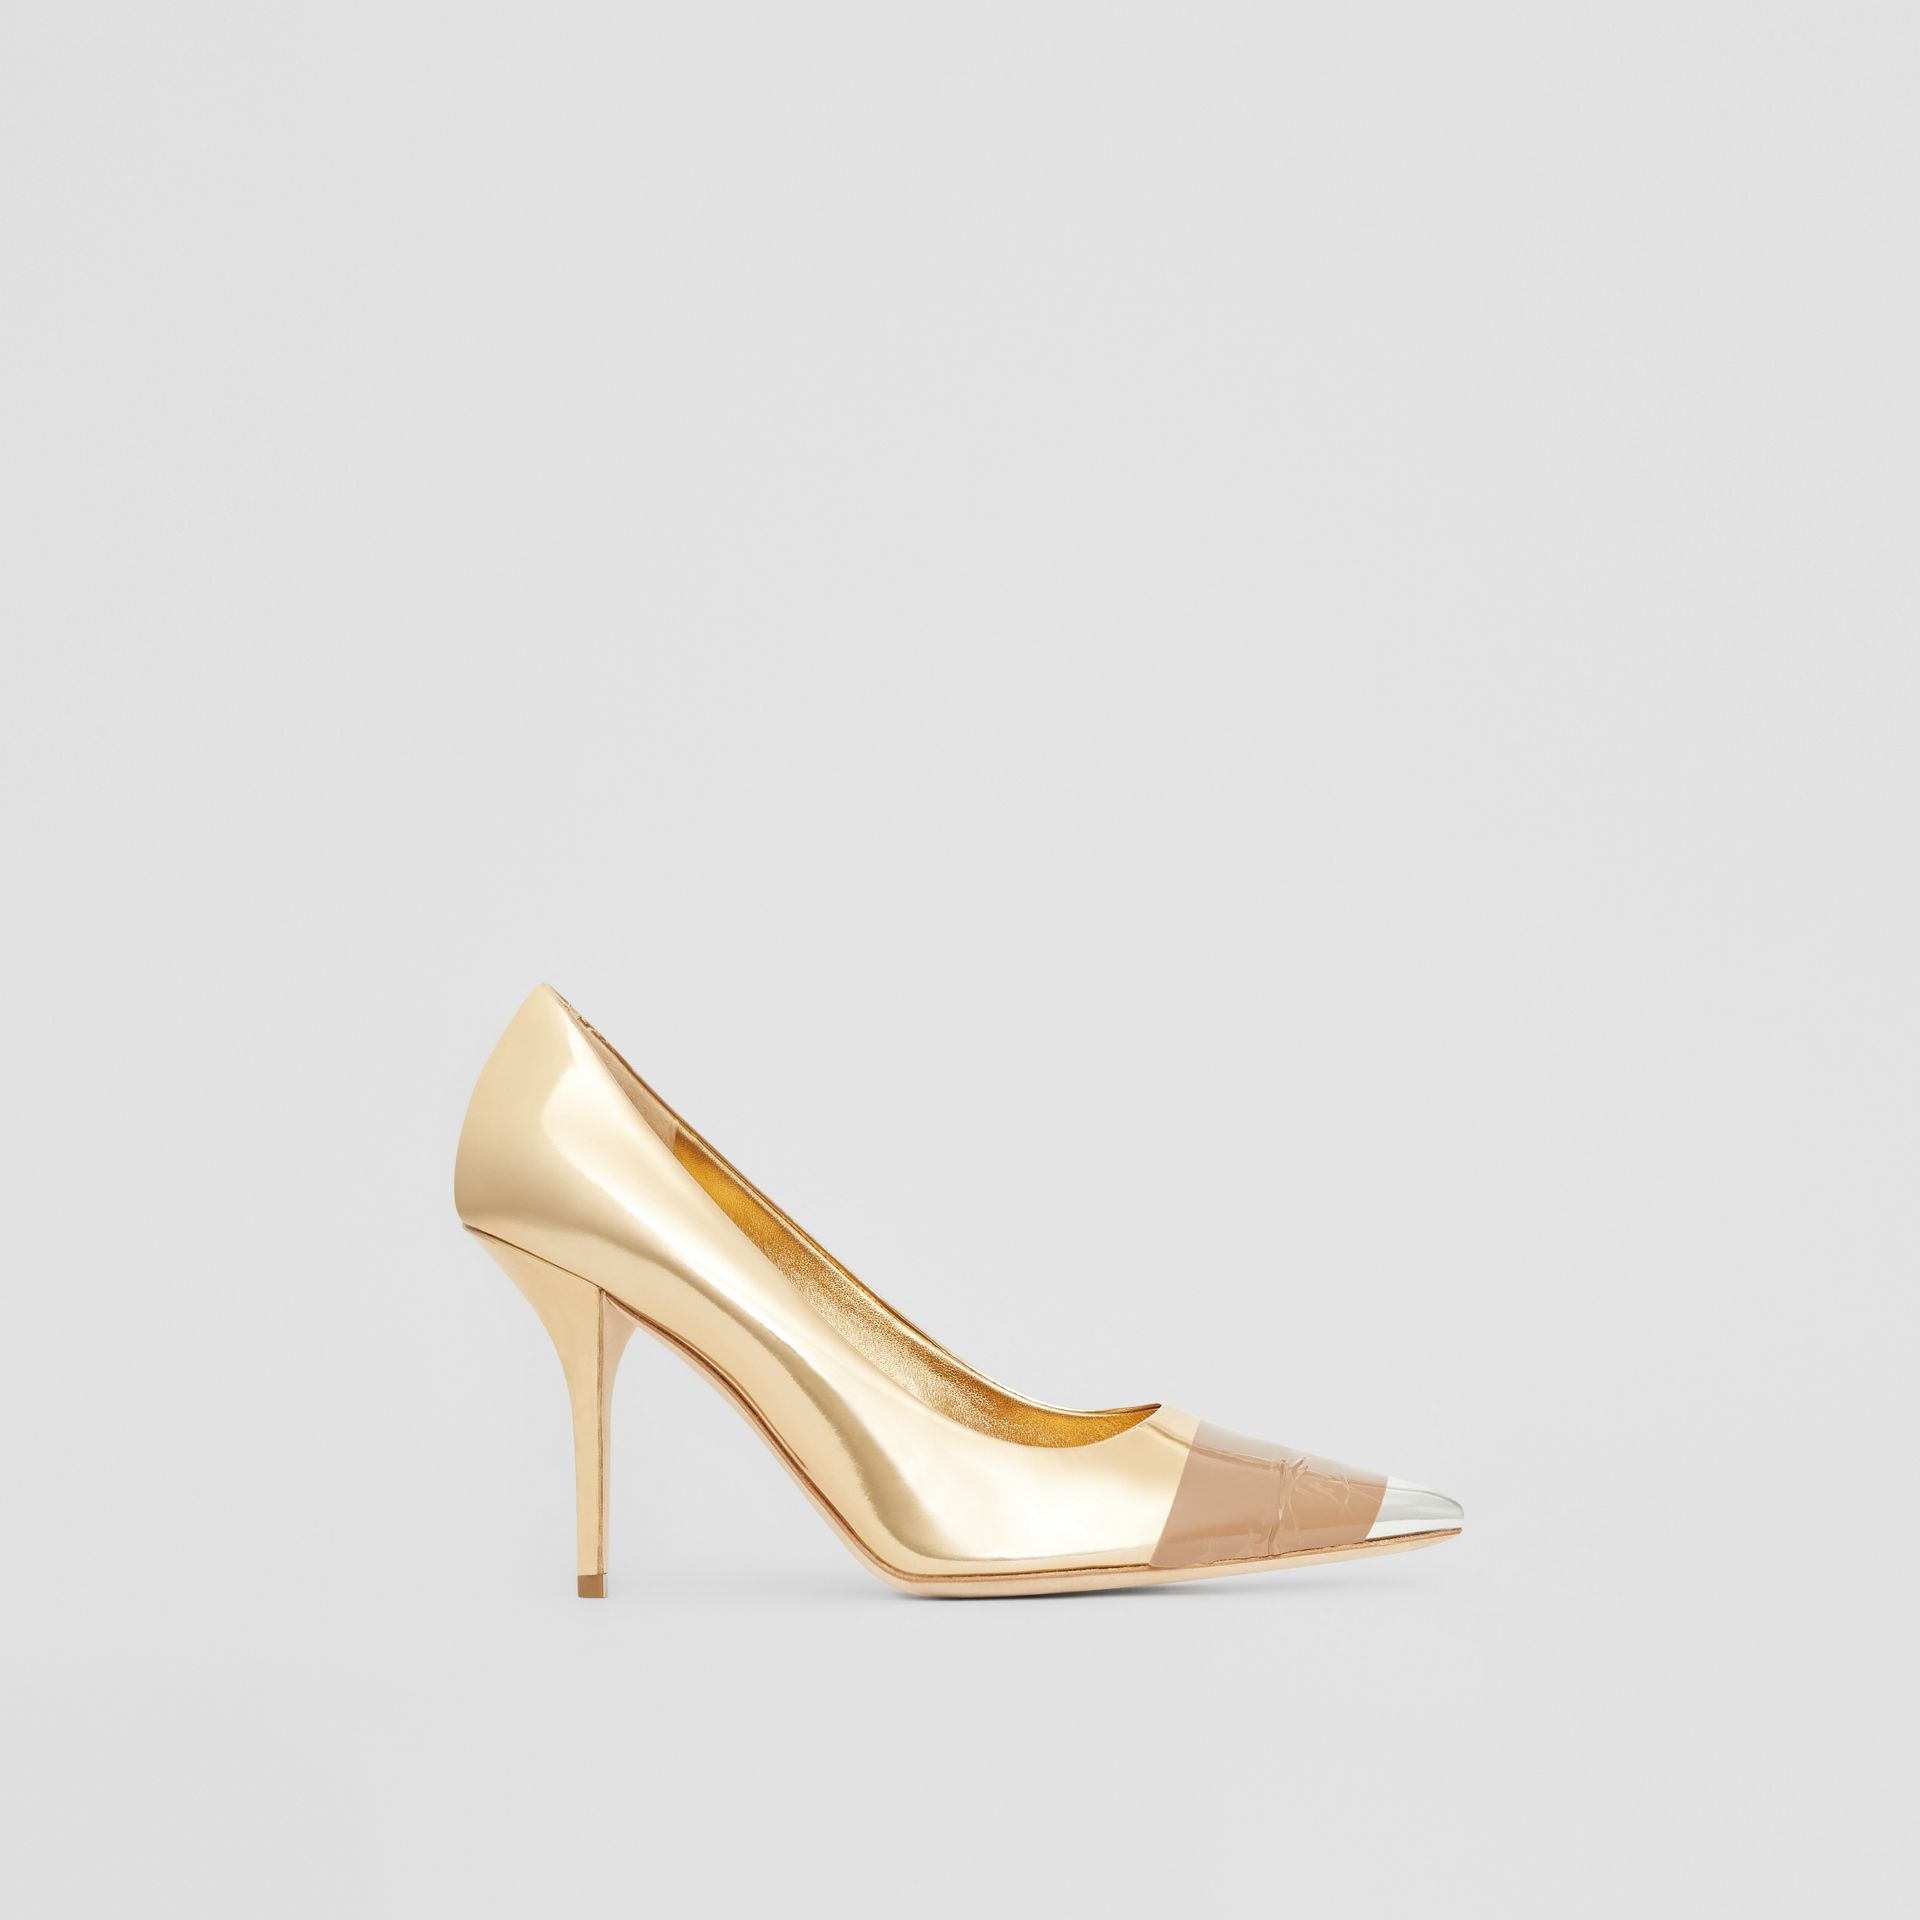 Tape Detail Mirrored Leather Pumps in Gold/silver - Women | Burberry Australia - gallery image 5